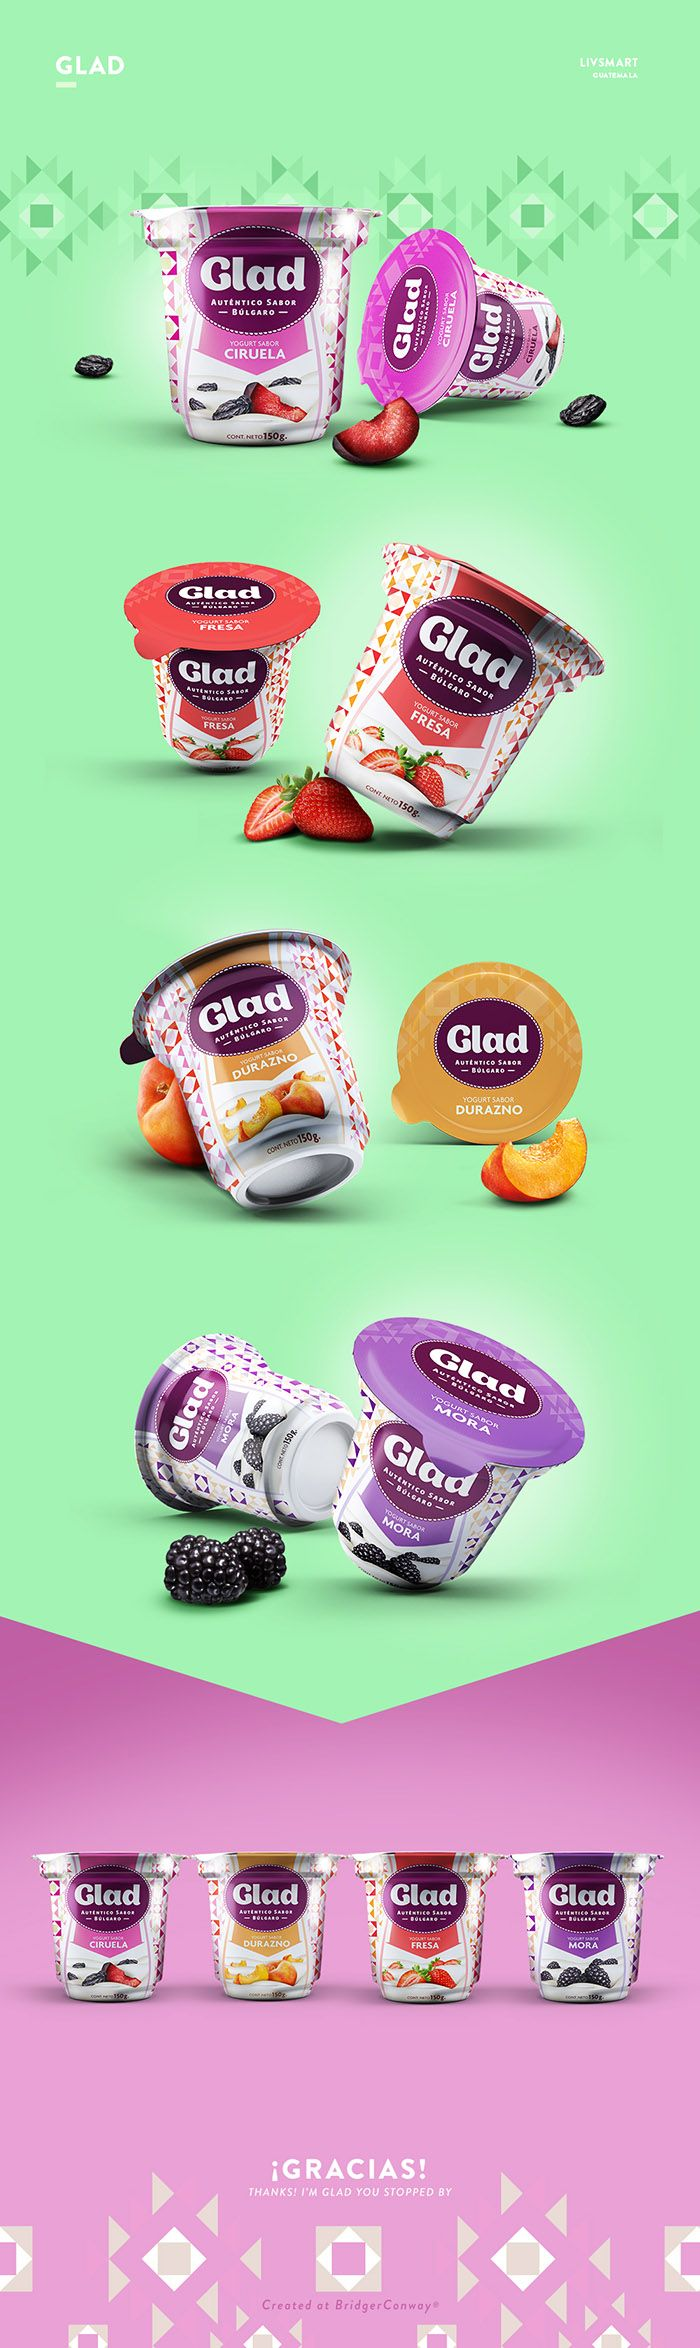 Glad yogurt by Julieta Fernandez Castex. Source: Daily Package Design Inspiration. #SFields99 #packaging #design